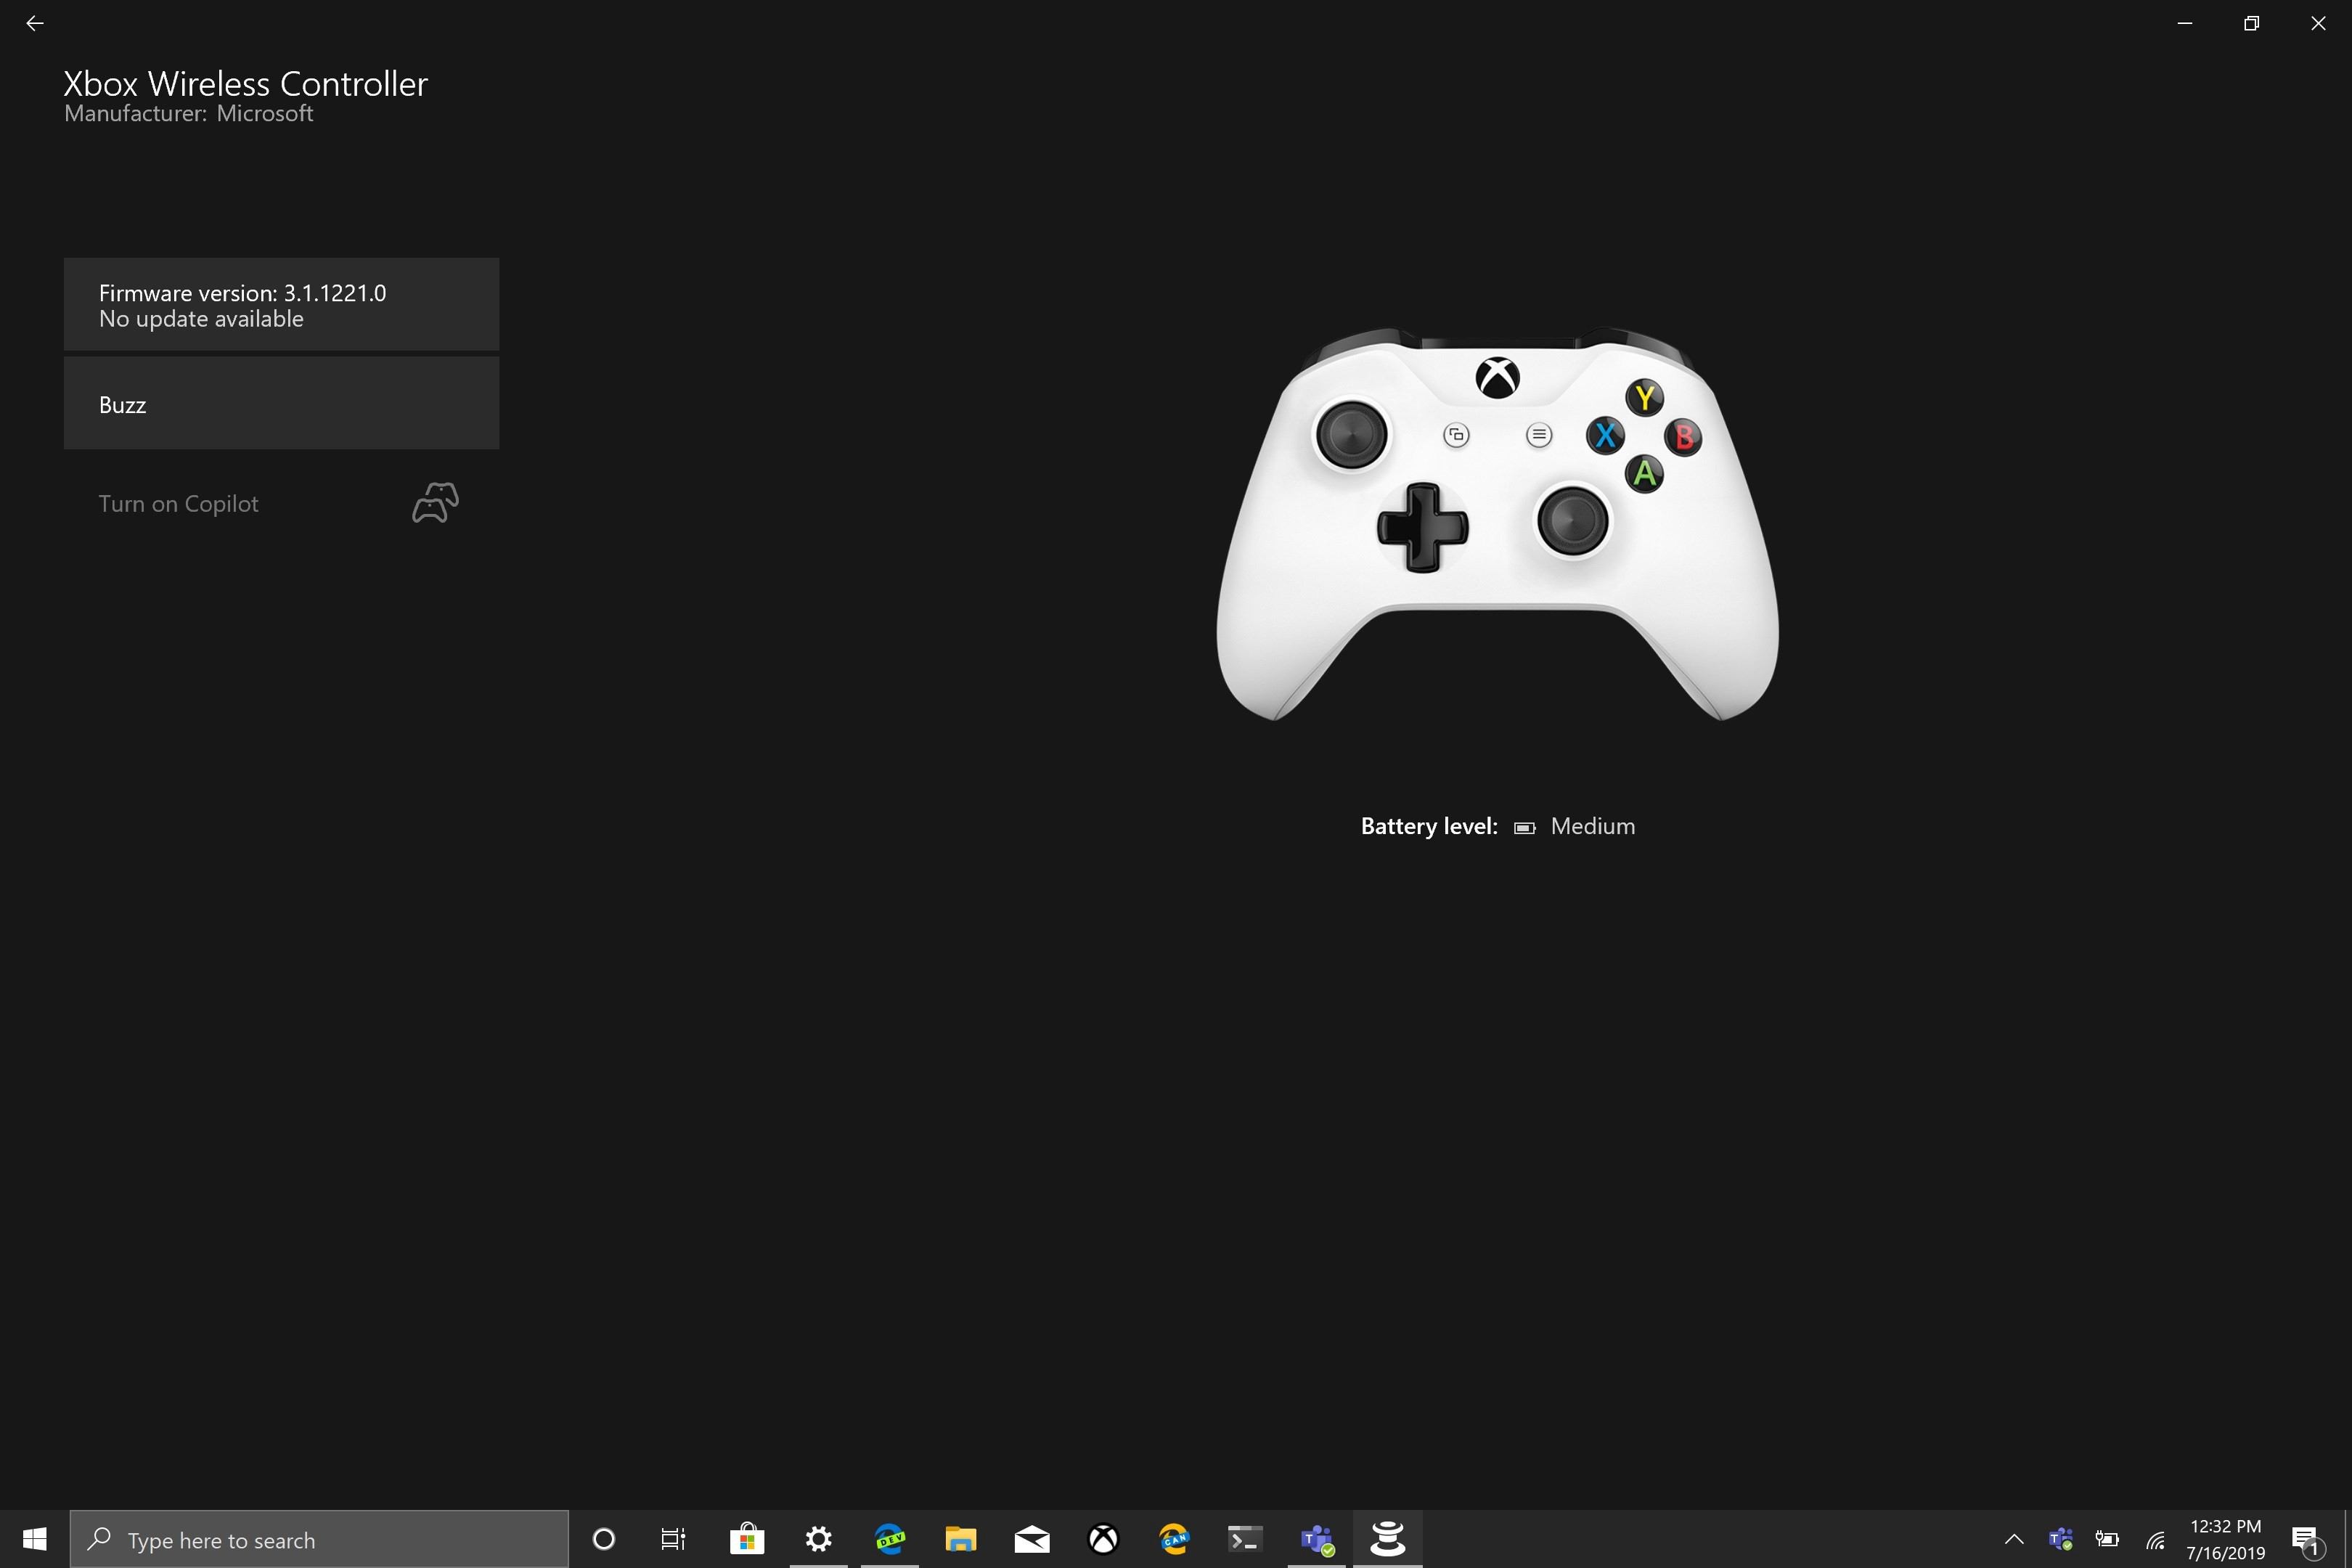 How To Check The Battery Level Of Your Xbox One Controller On Windows 10 By Dave W Shanahan Medium